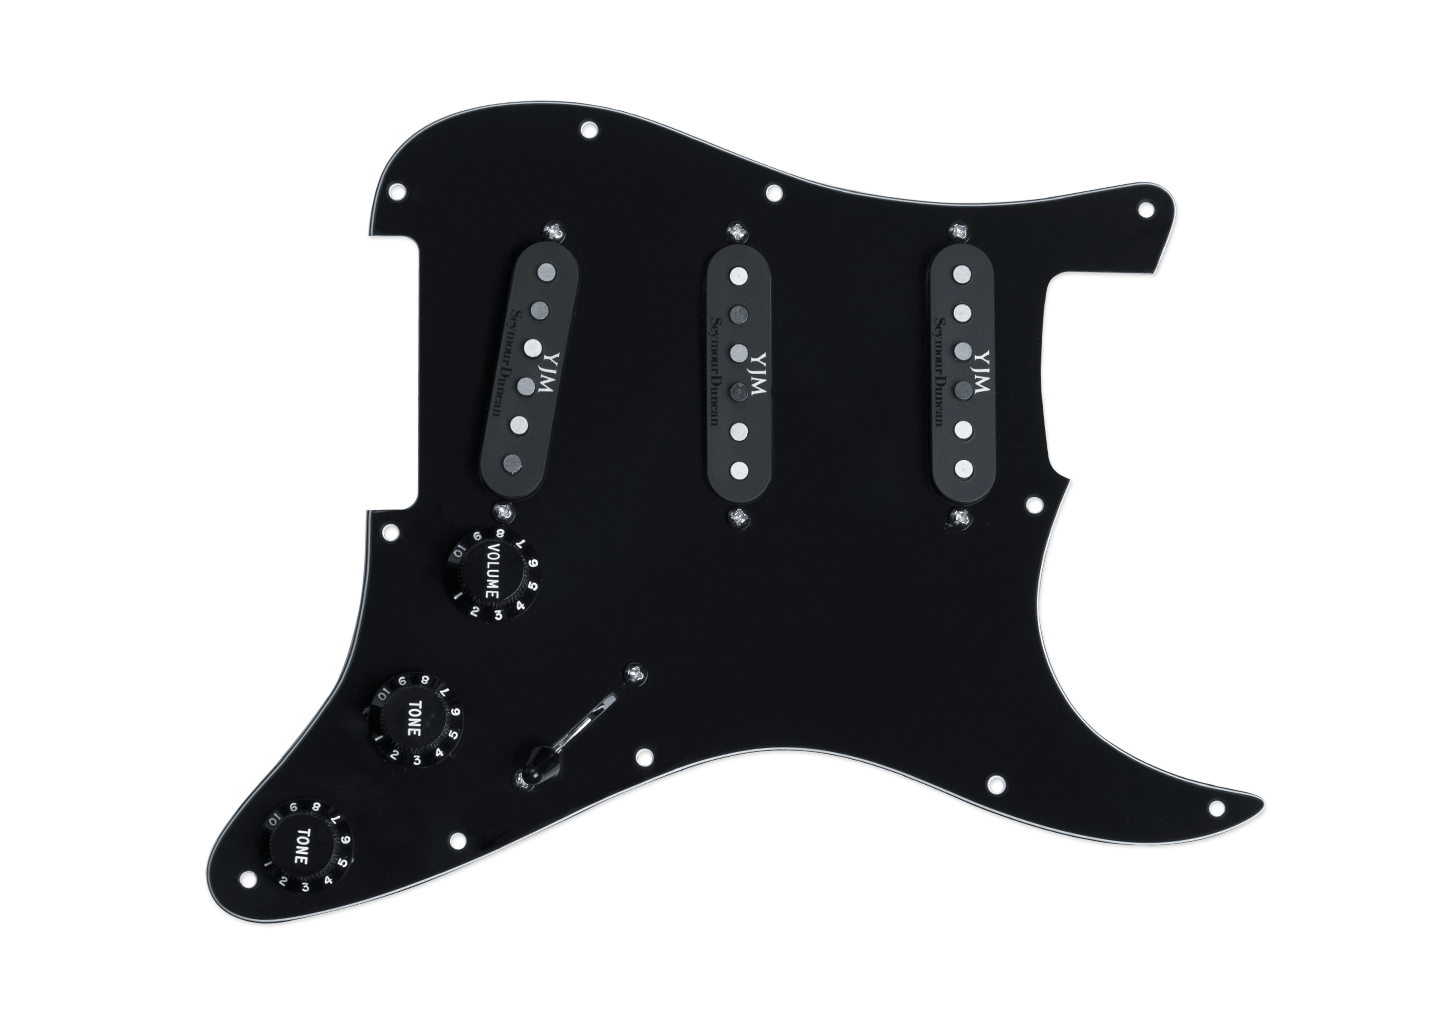 Seymour Duncan Yngwie Malmsteen YJM Fury Loaded Pickguard Black